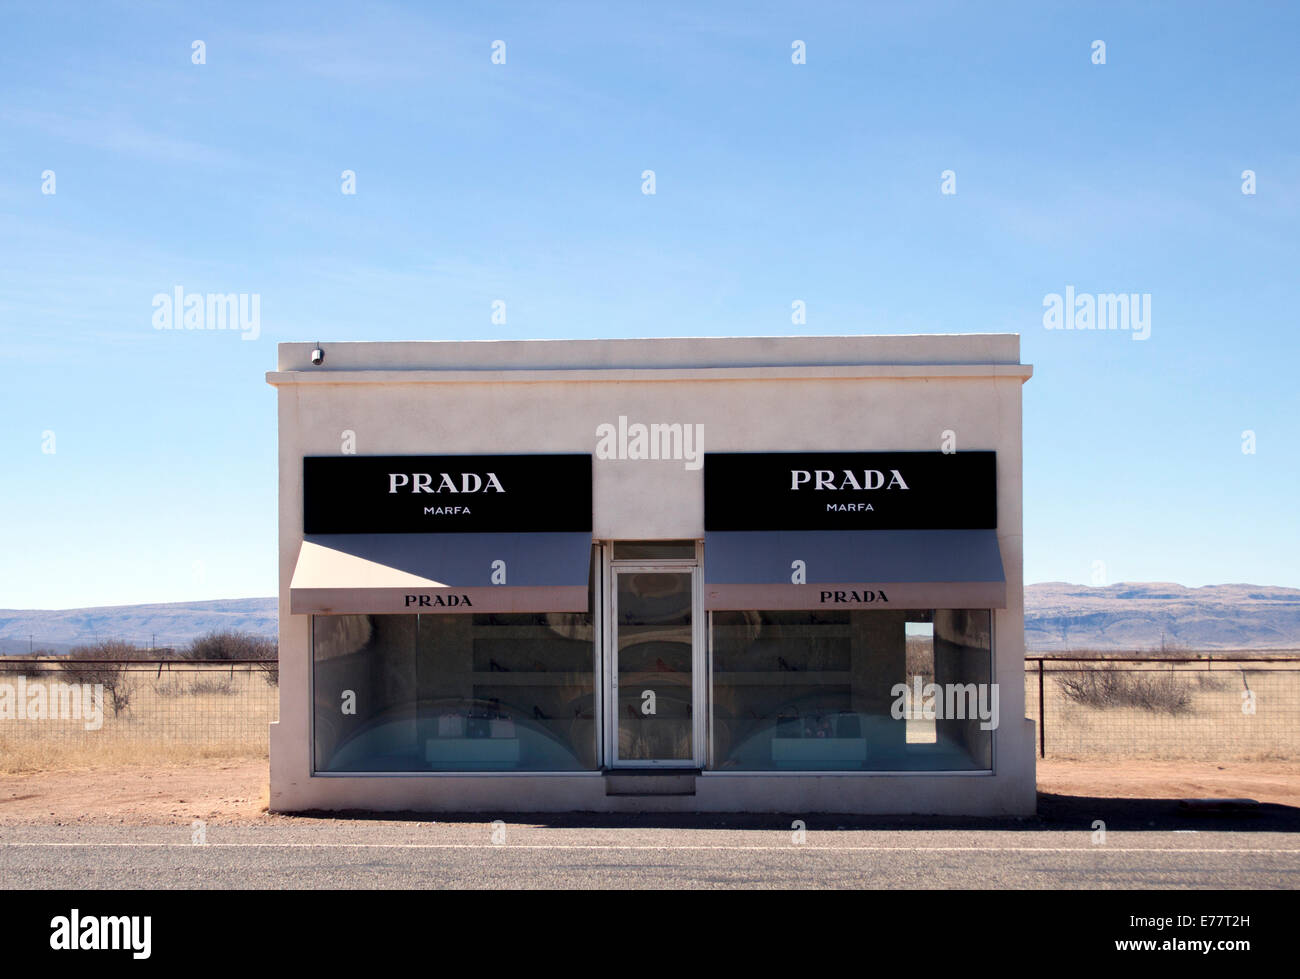 authentic prada handbags online - Prada Marfa Stock Photos & Prada Marfa Stock Images - Alamy